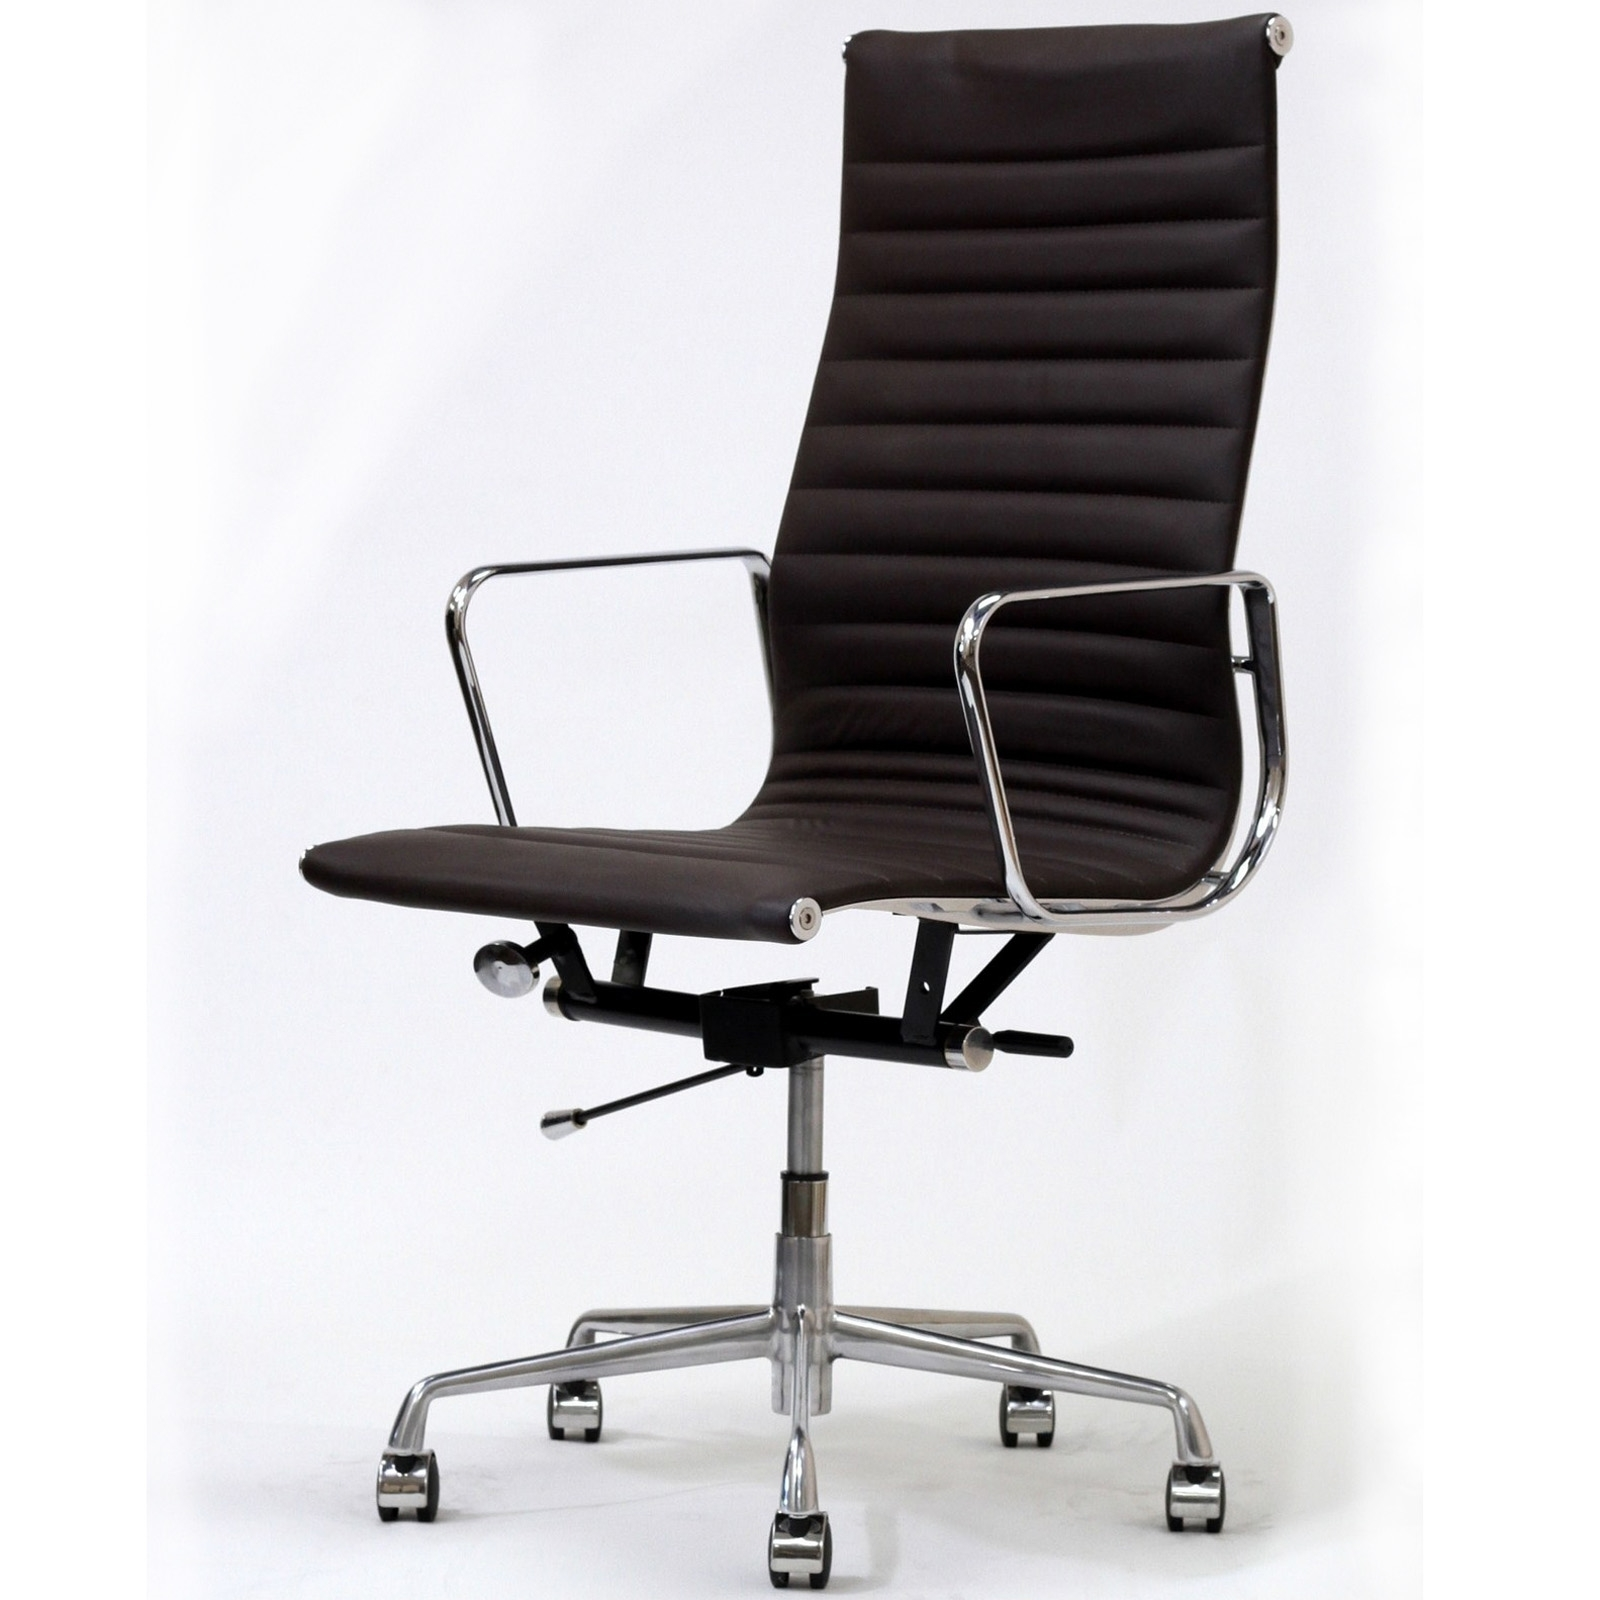 stylish office chairs uk chair lift prices things you can do to improve your work space  brighter fm